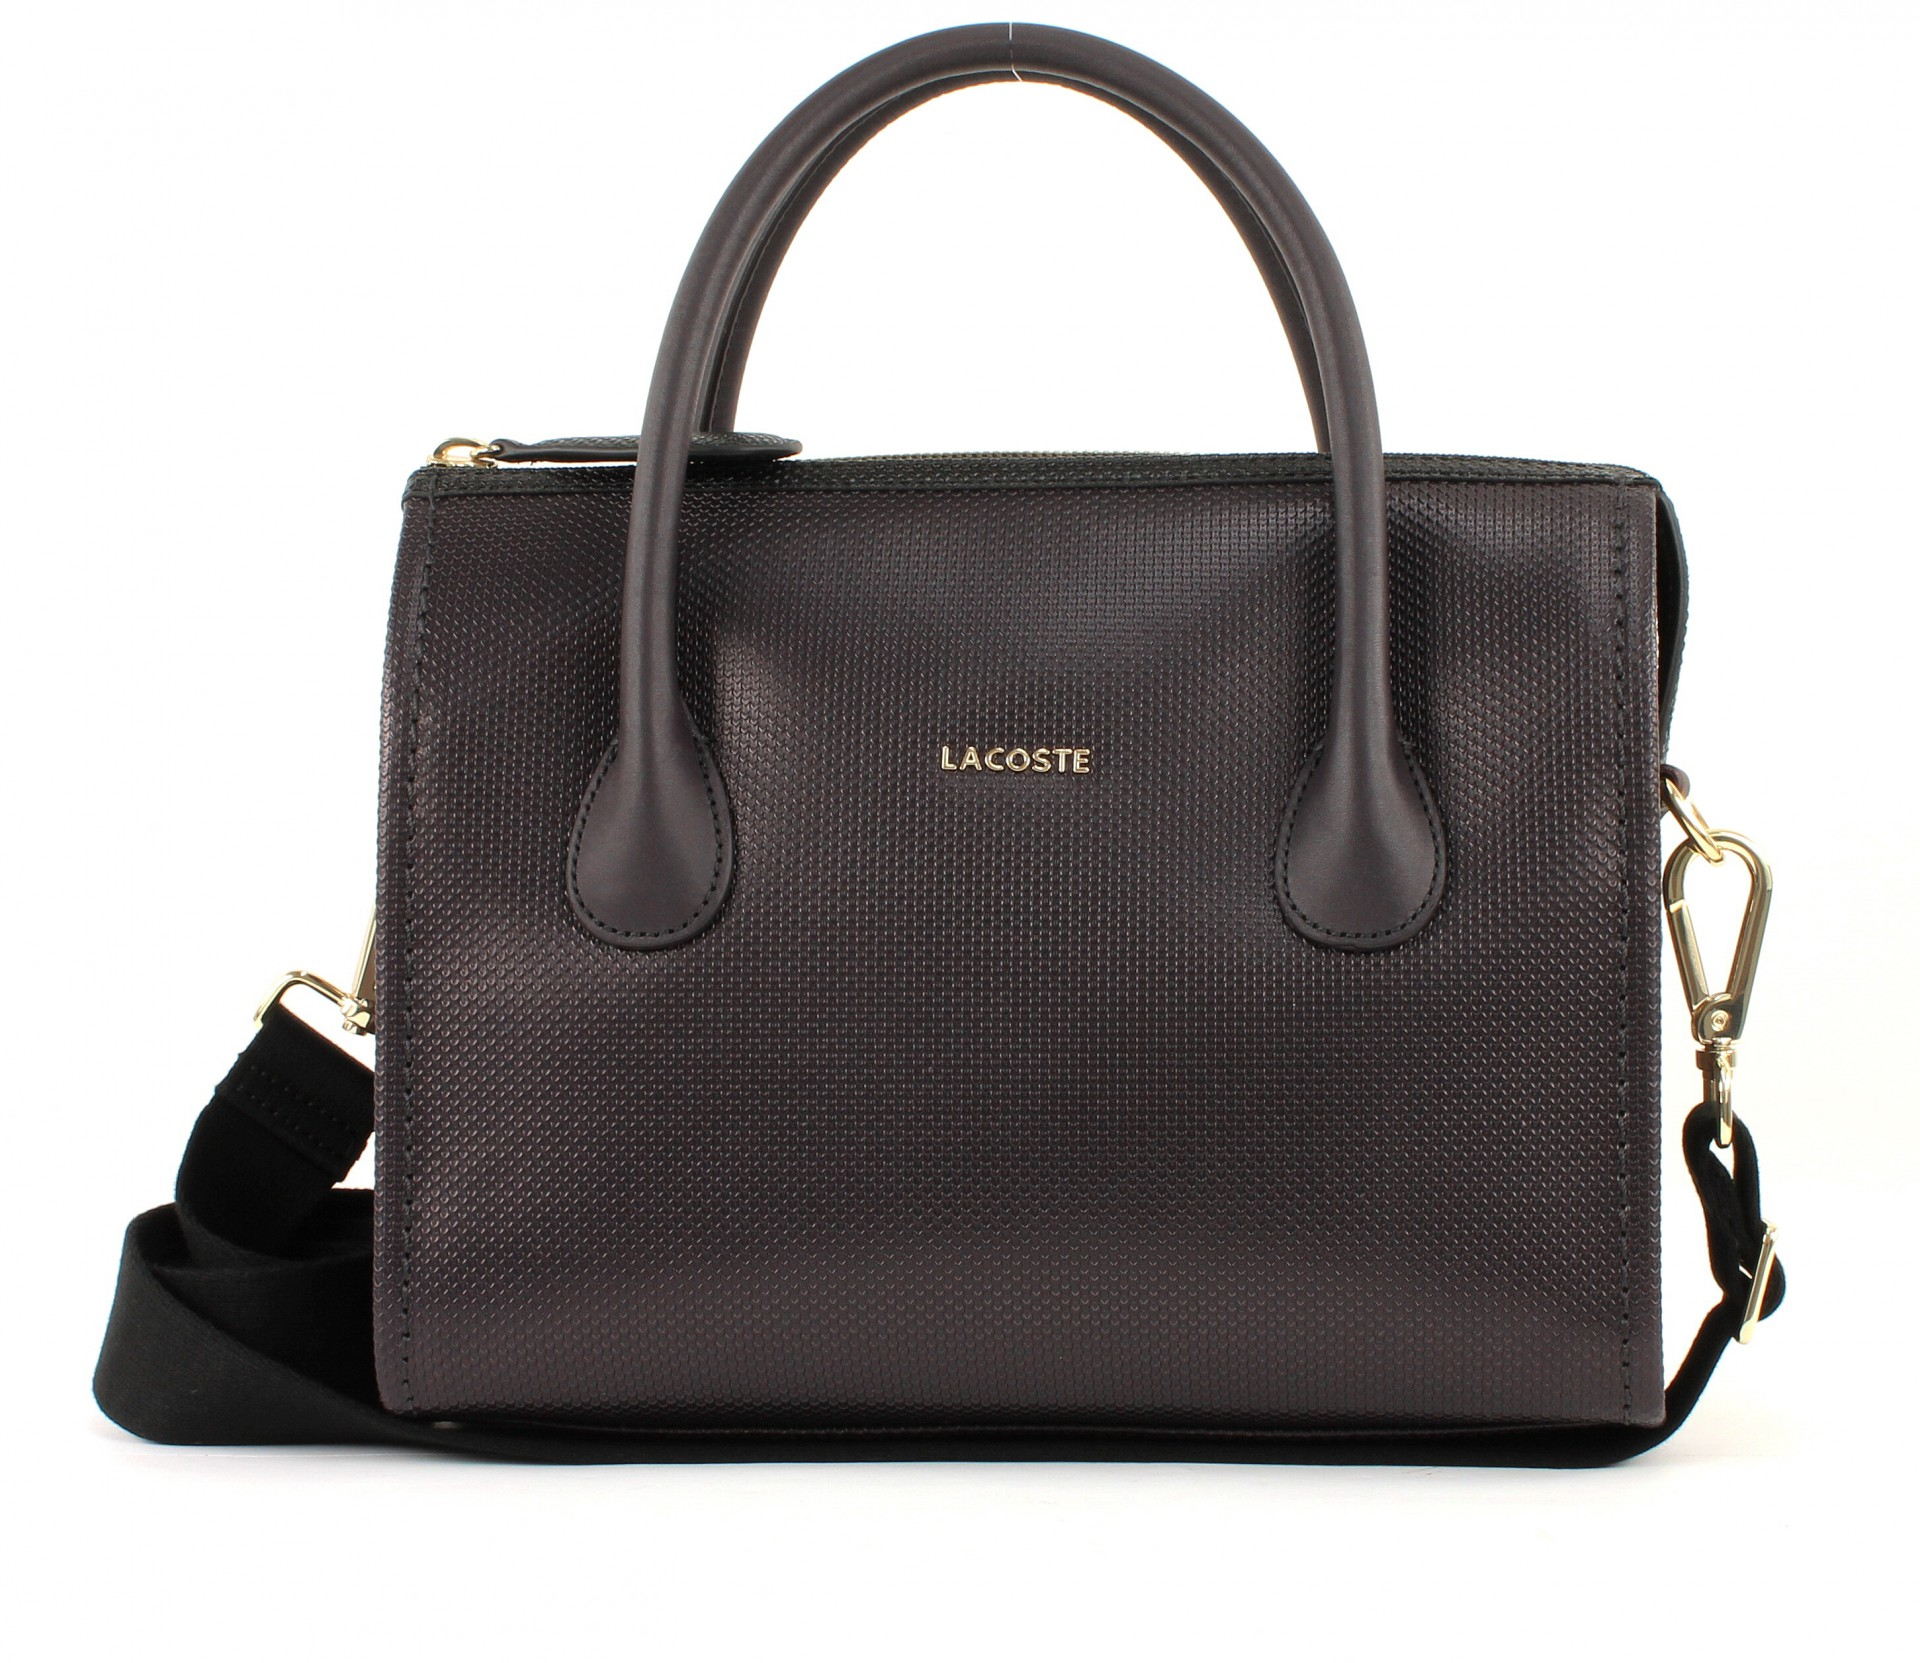 lacoste institutionnelle small boston bag tasche umh ngetasche leder damen brau ebay. Black Bedroom Furniture Sets. Home Design Ideas